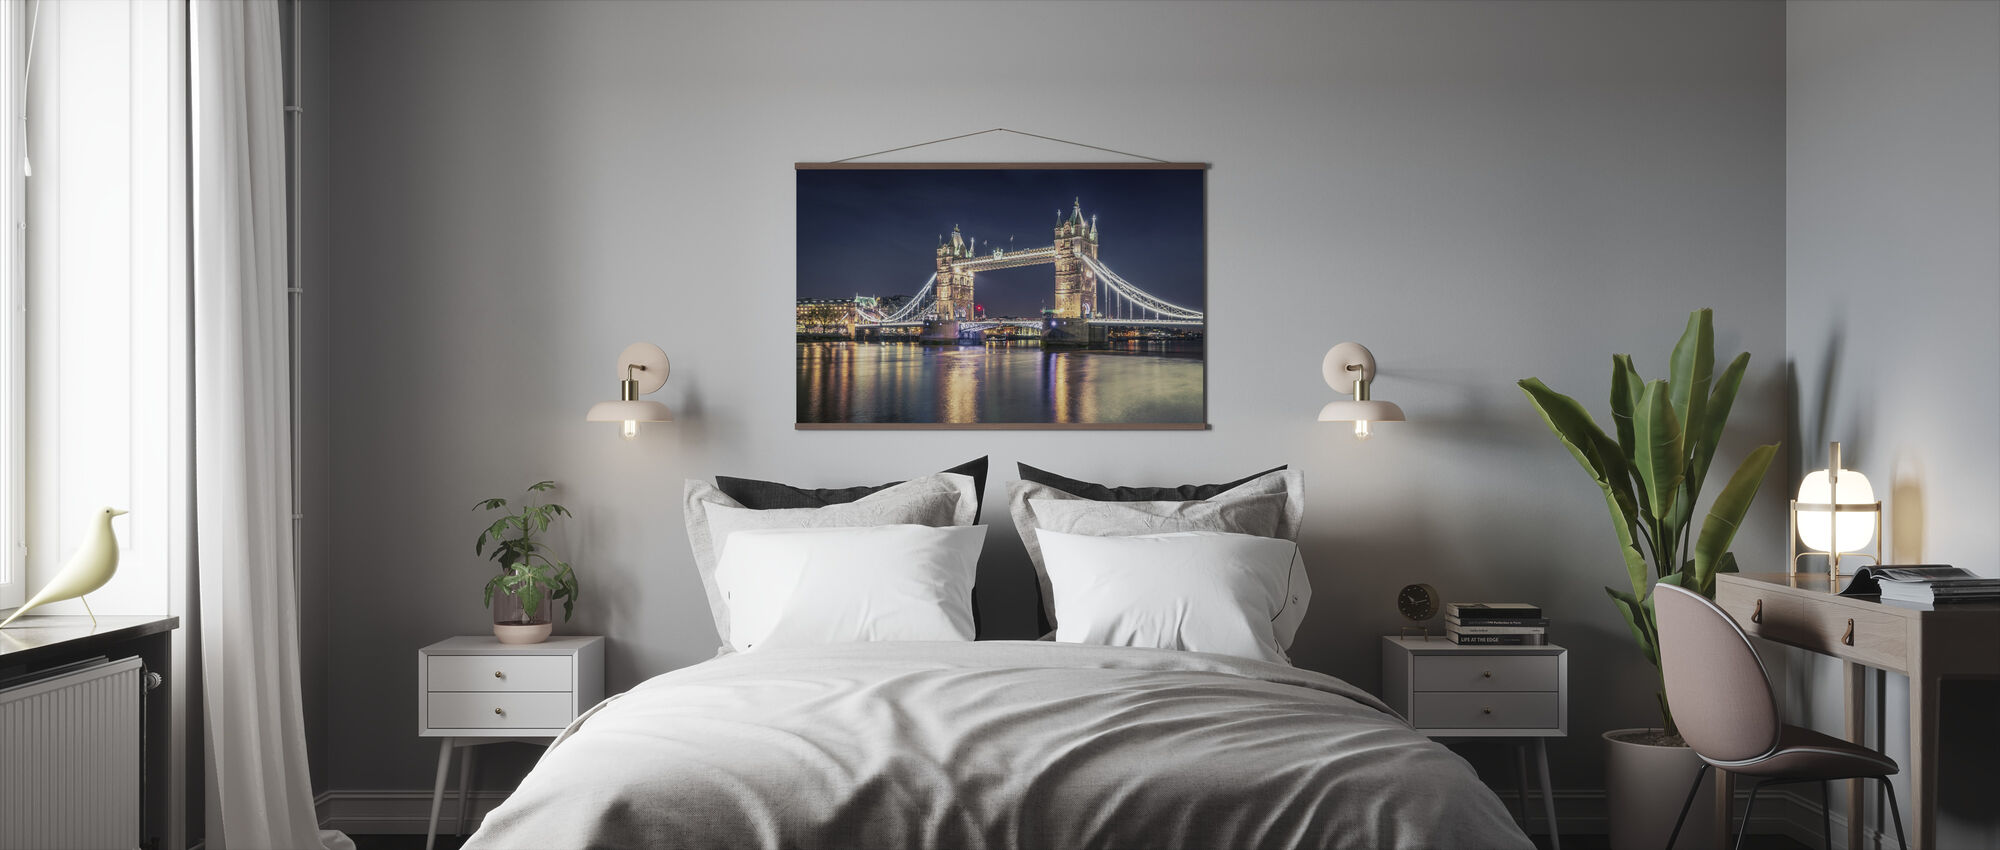 Night at the Tower Bridge - Poster - Bedroom